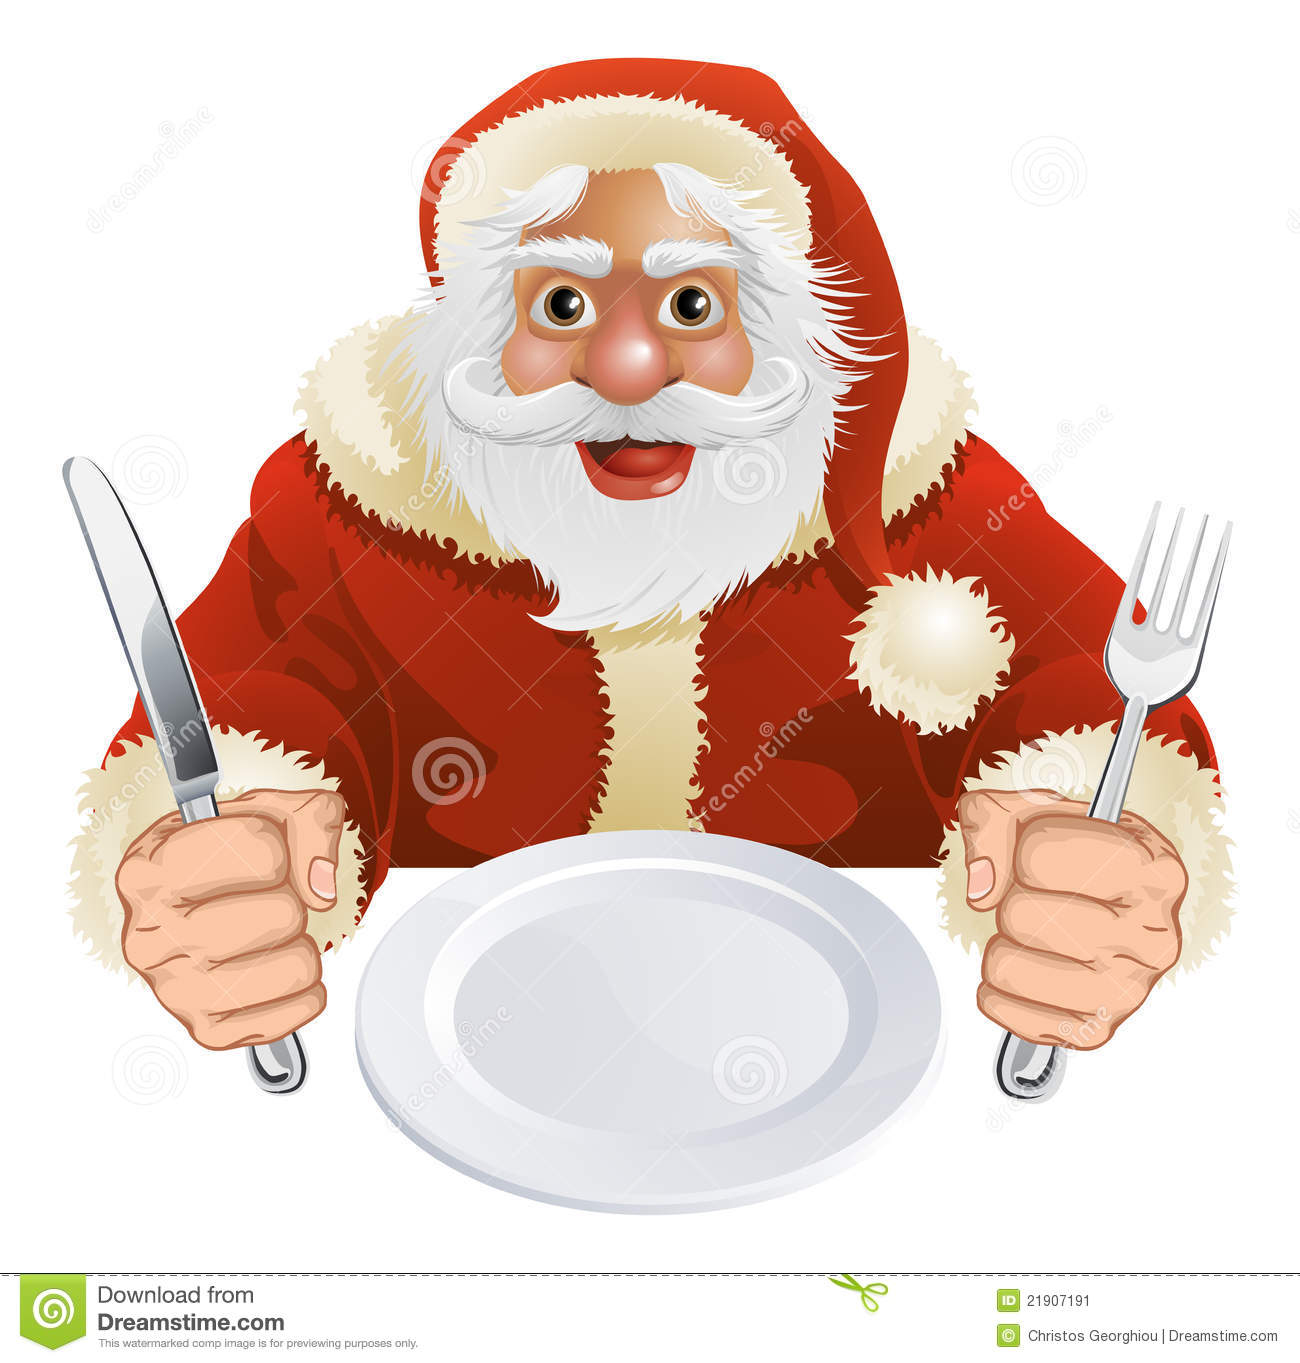 Illustration Of Santa Claus Seated For Christmas Dinner With Empty